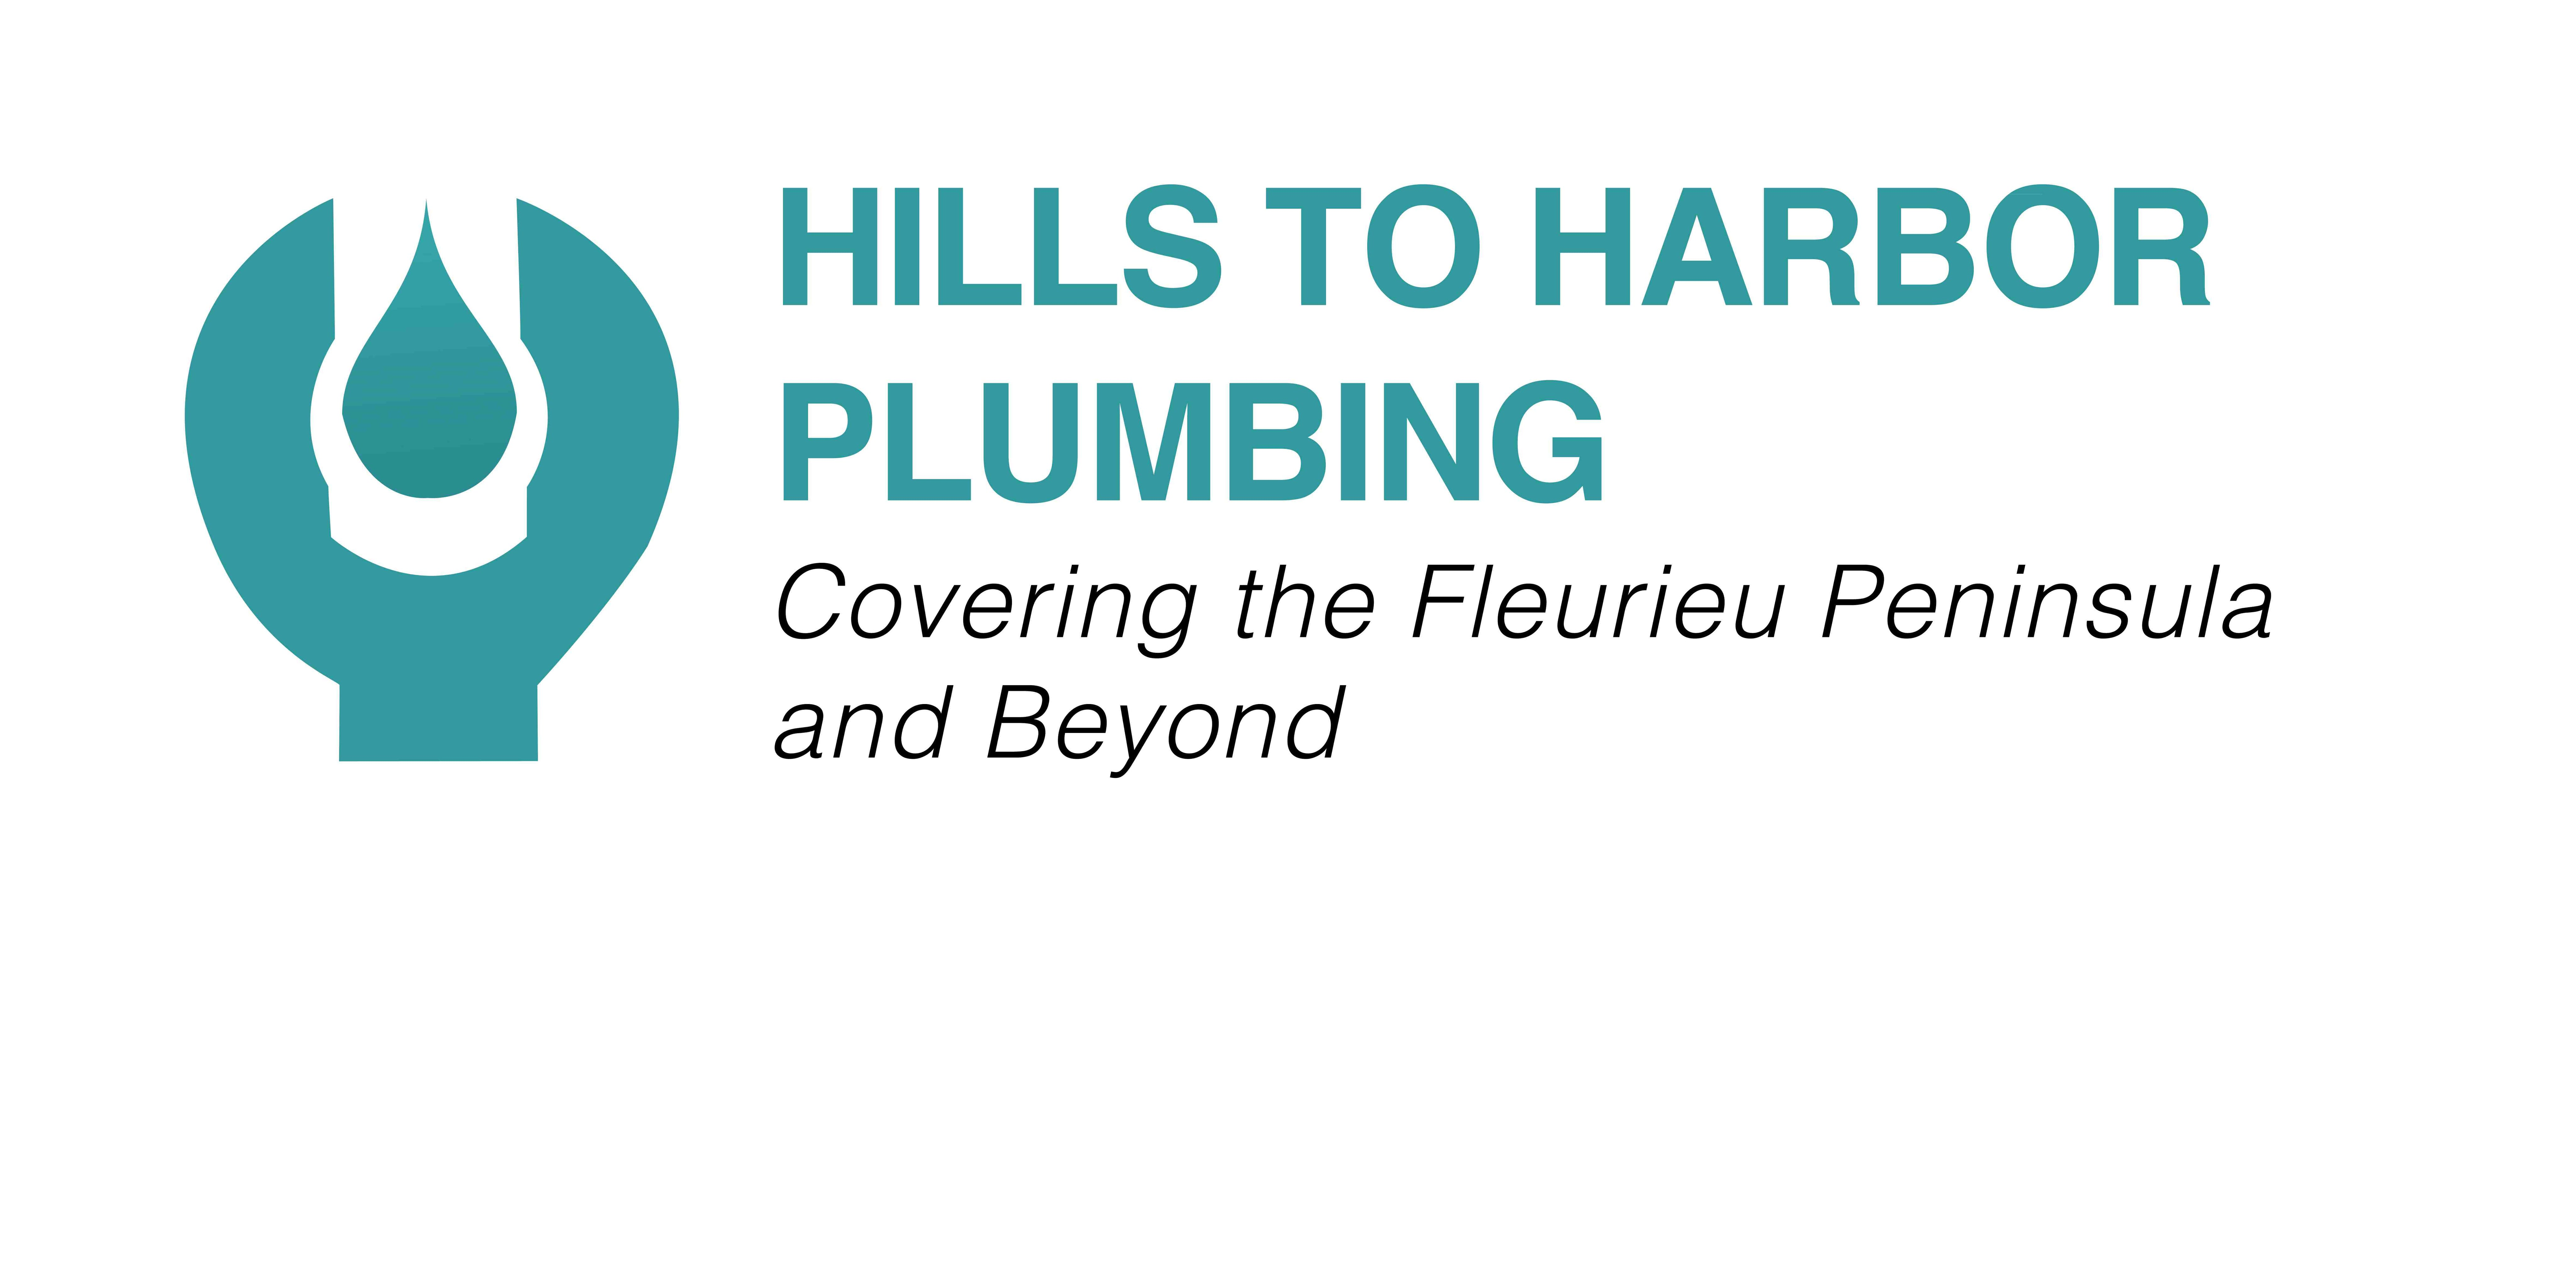 Hills to Harbor Plumbing